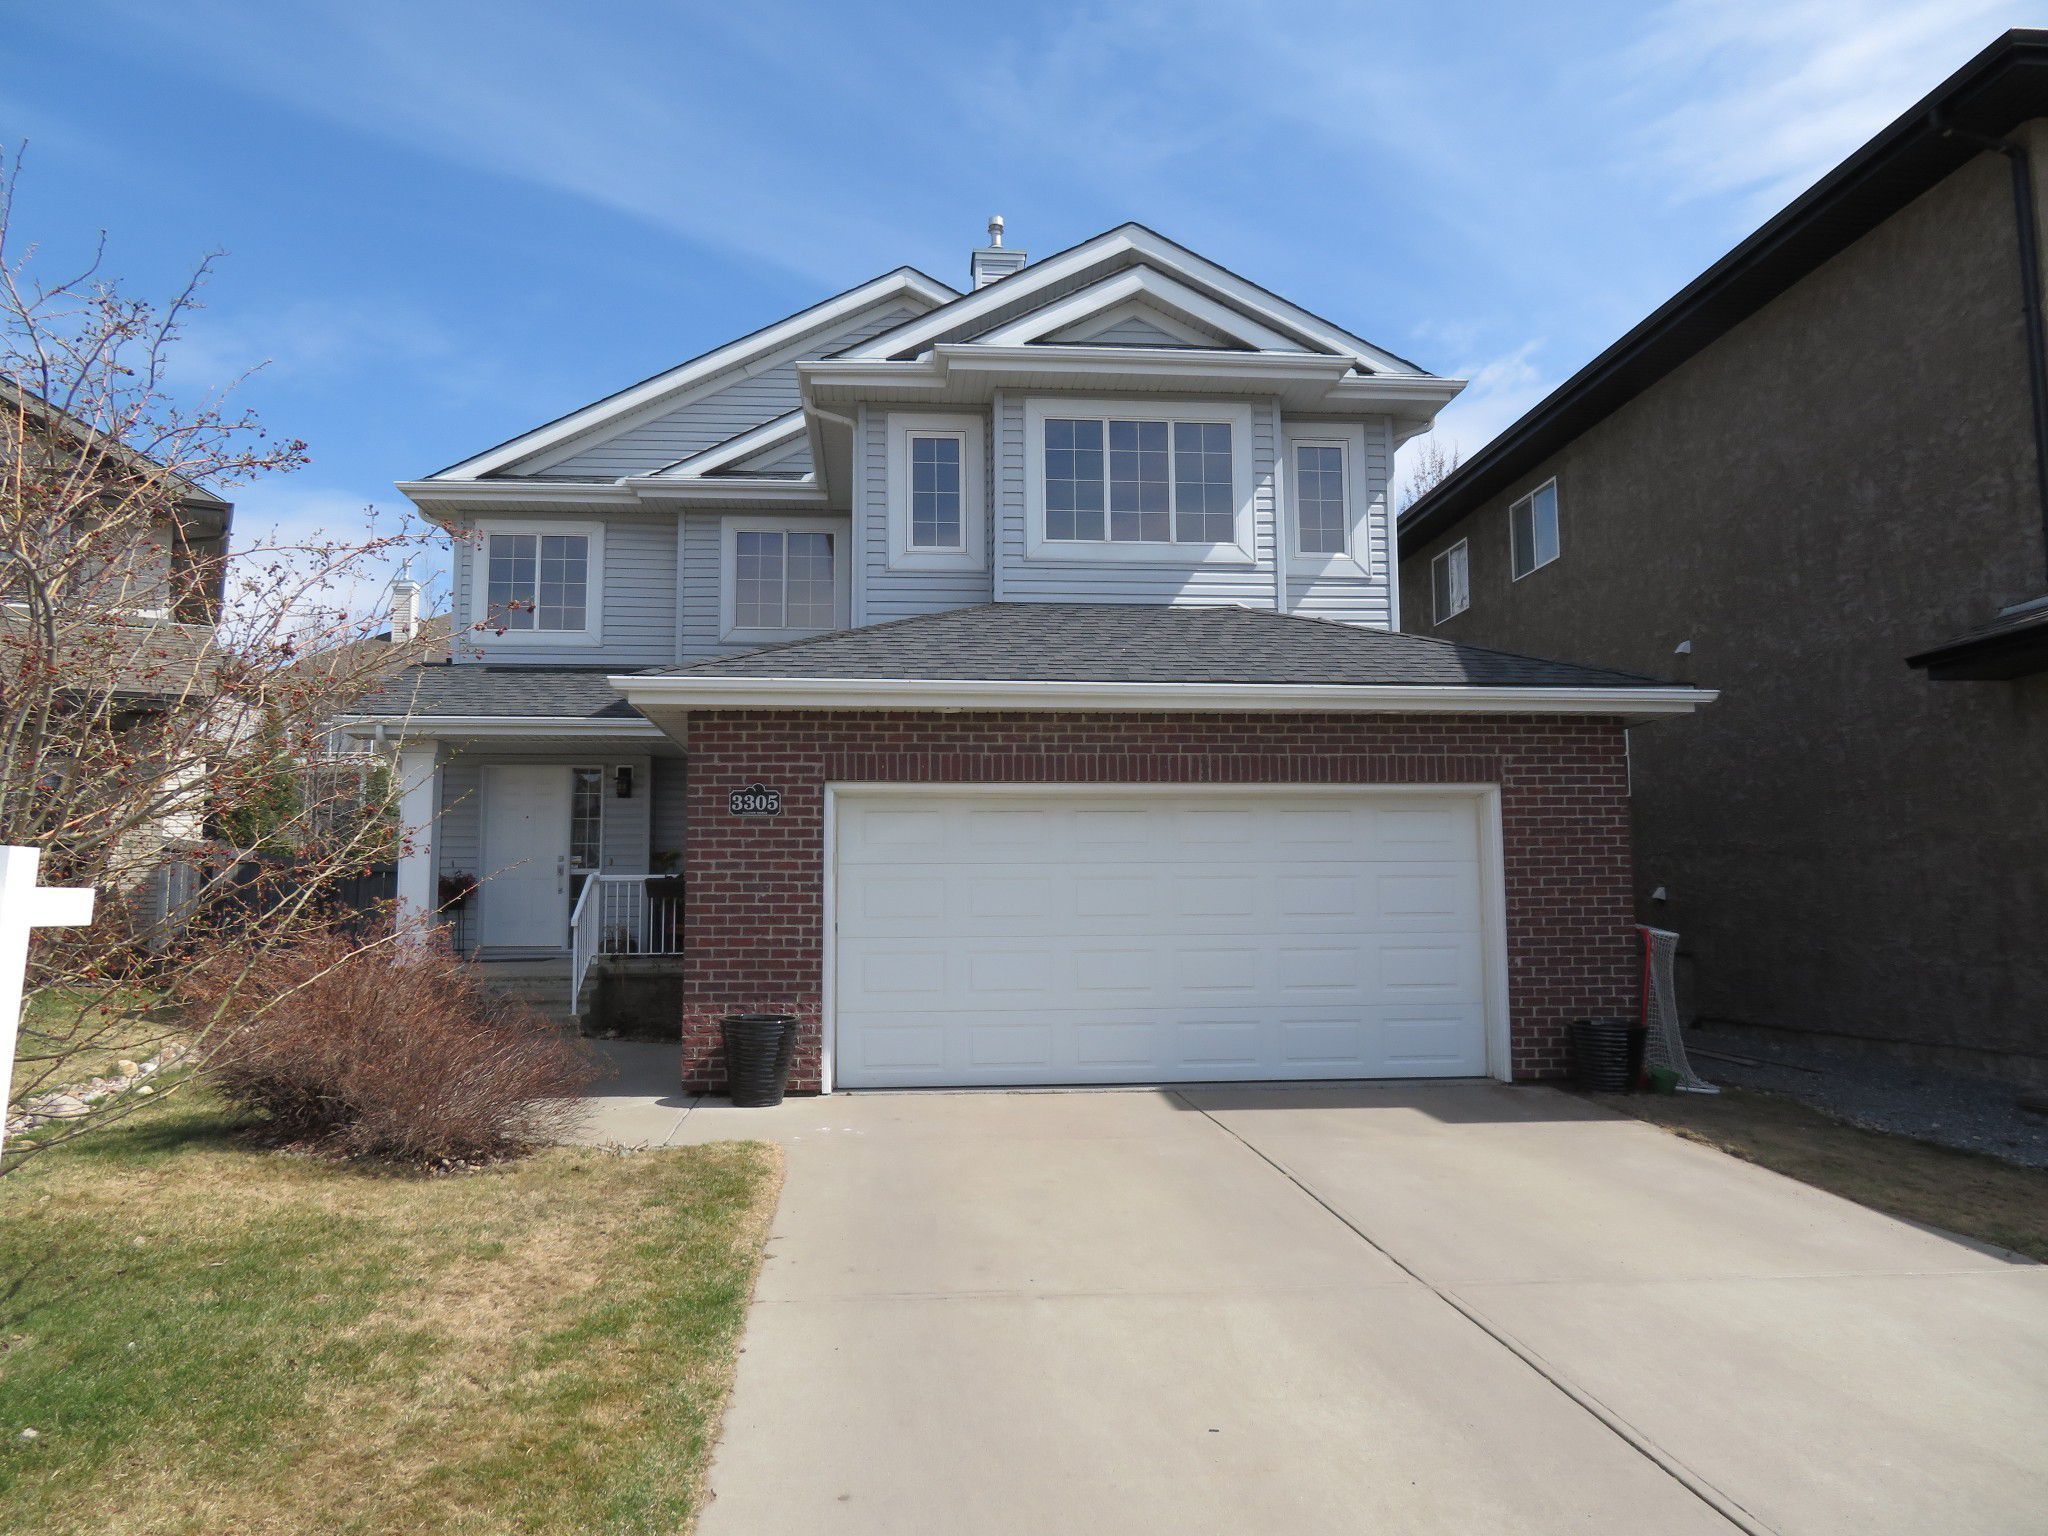 Main Photo: 3305 McCall Court in EDMONTON: House for sale